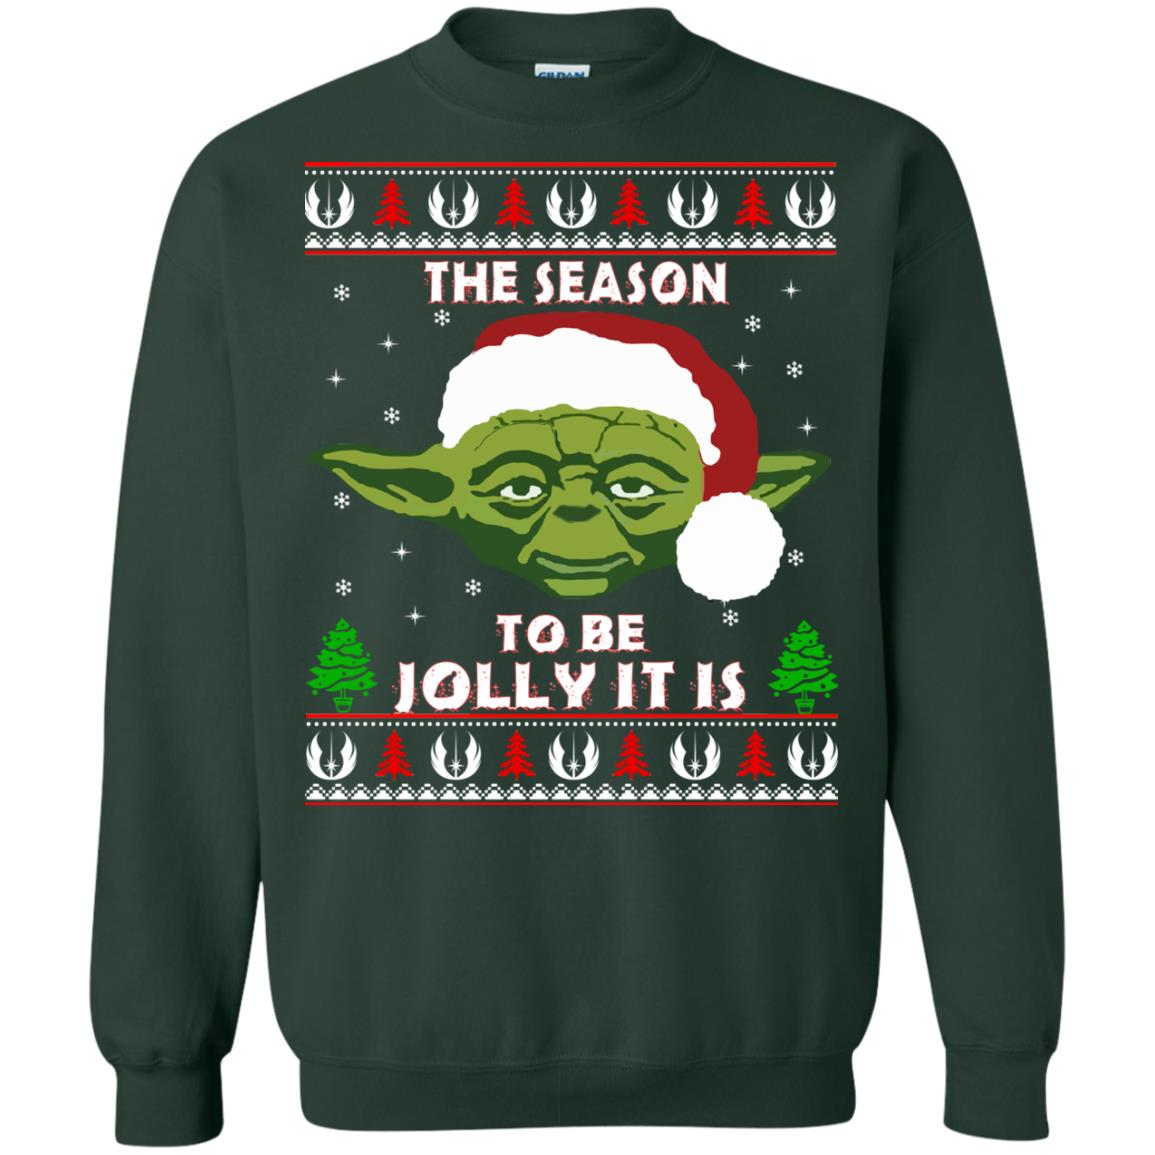 image 1707 - Star Wars Yoda: Tis the season to be jolly it is Christmas sweater, hoodie